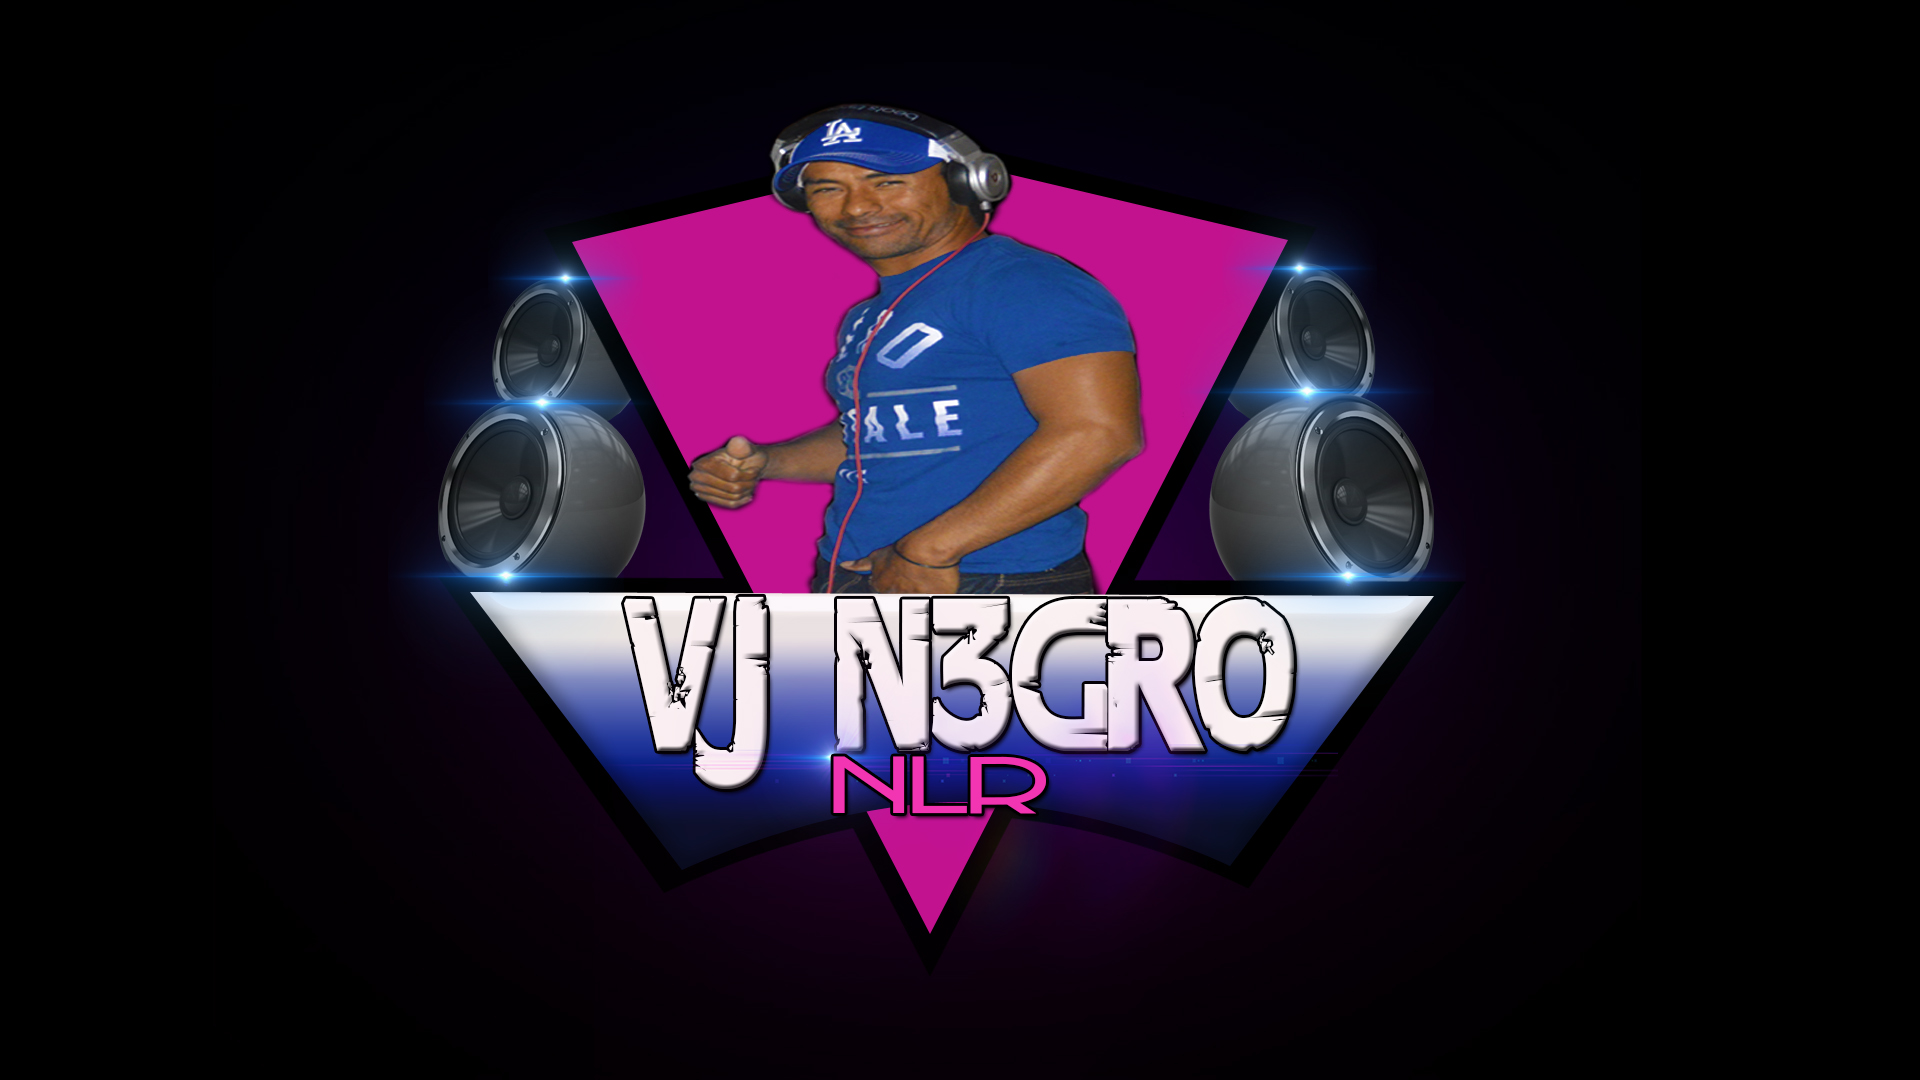 V J Novalatinremix Videos For Professional Vjs